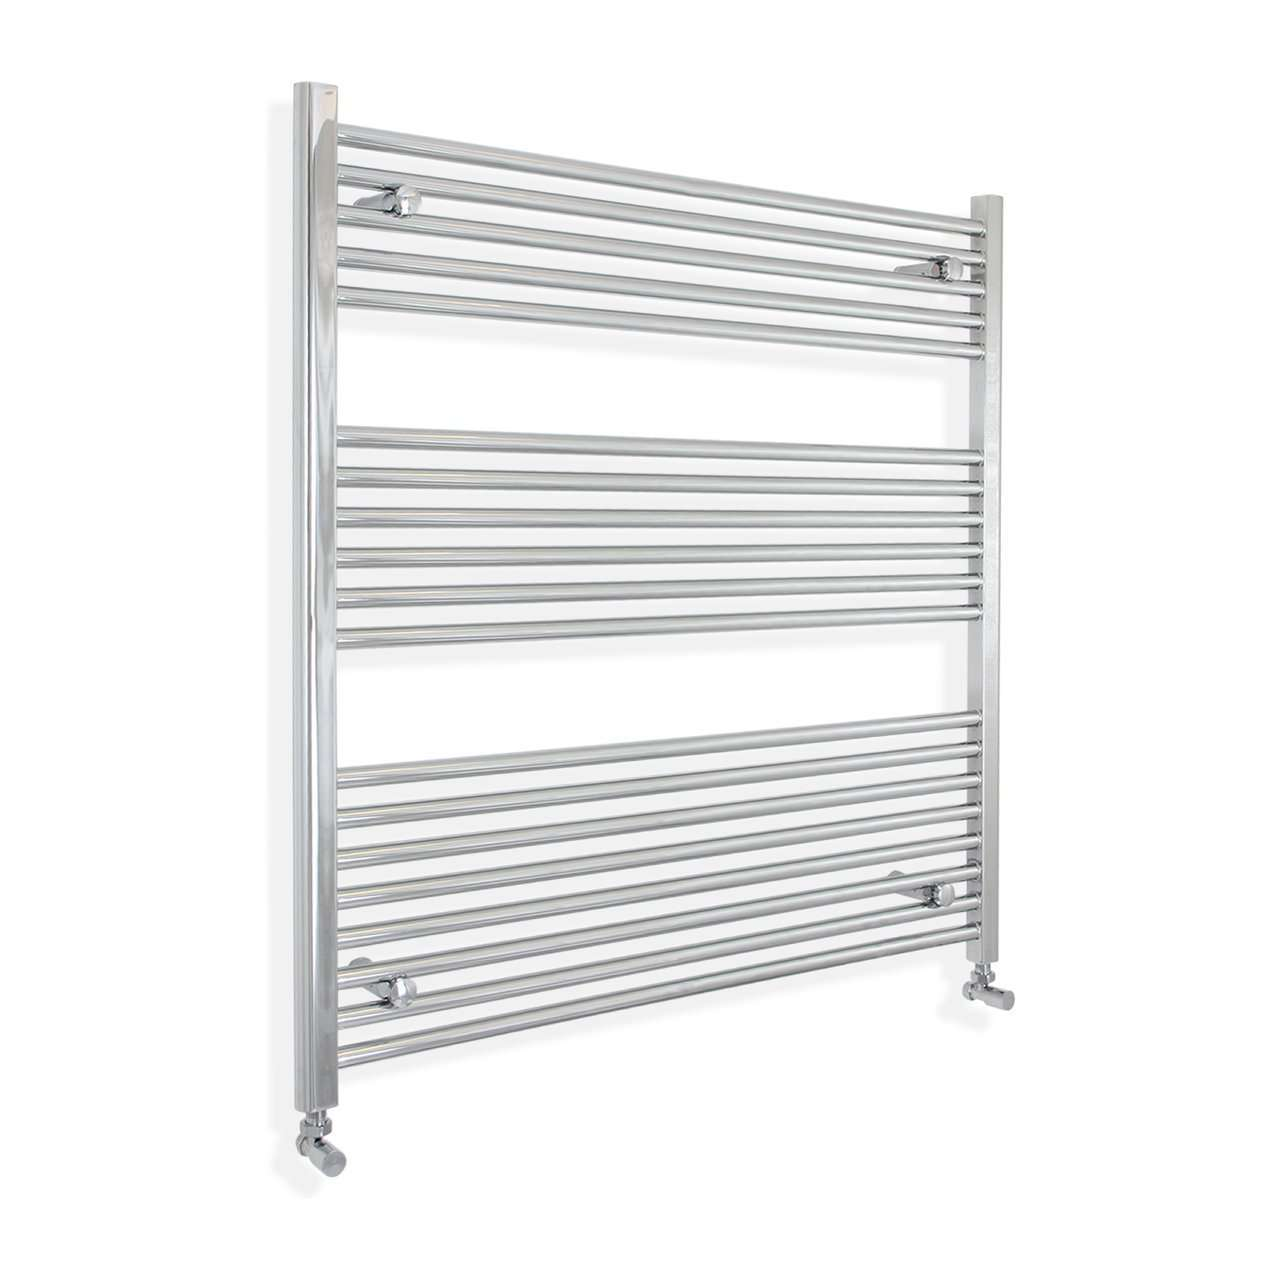 1200mm Wide 900mm High Flat Chrome Heated Towel Rail Radiator HTR,With Angled Valve